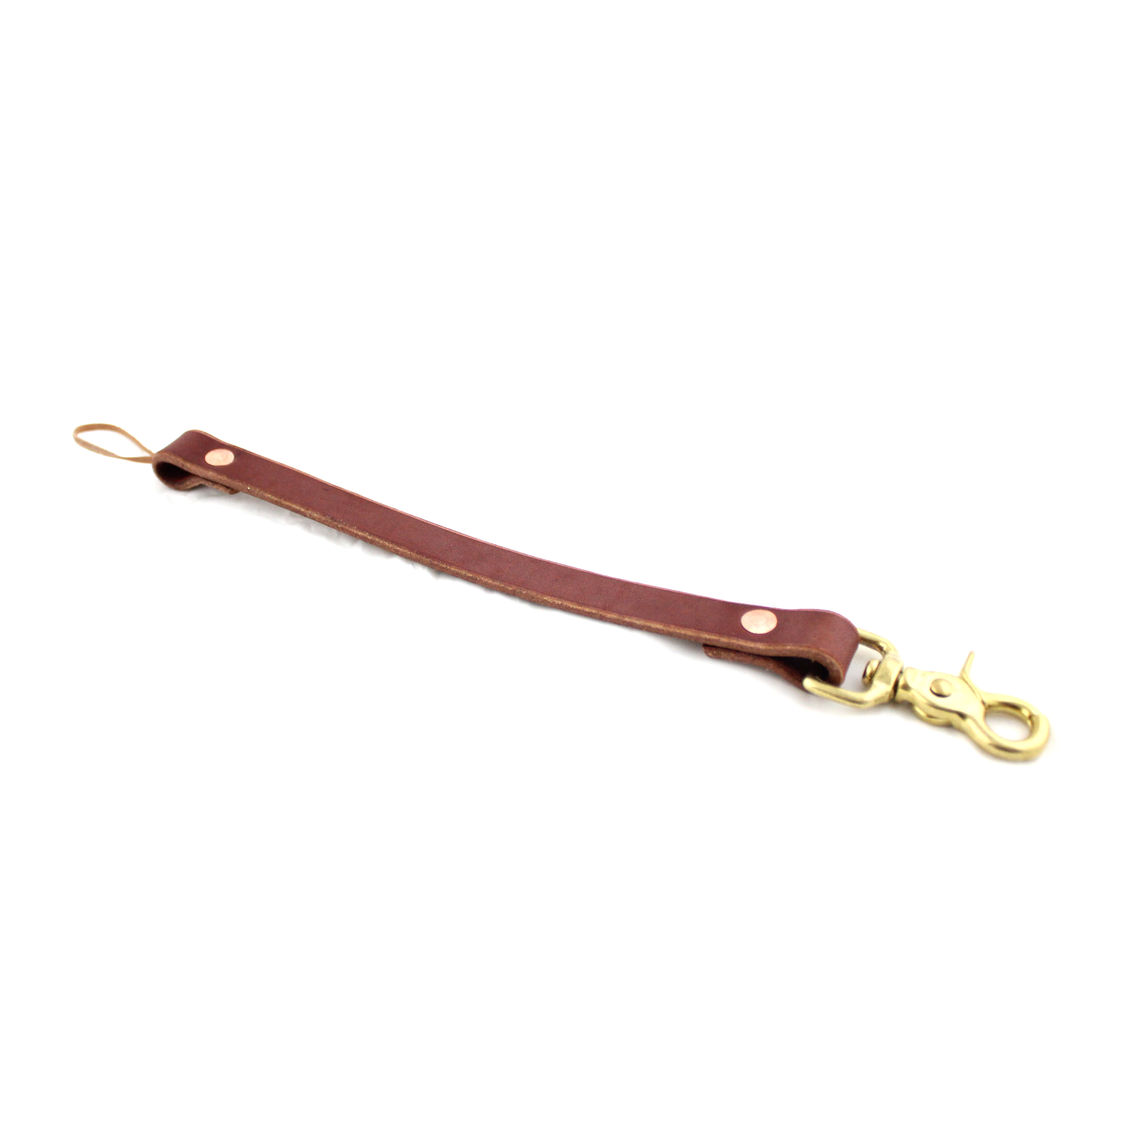 Harness Lanyard For Sale Harness Roper Wallet Lanyard |